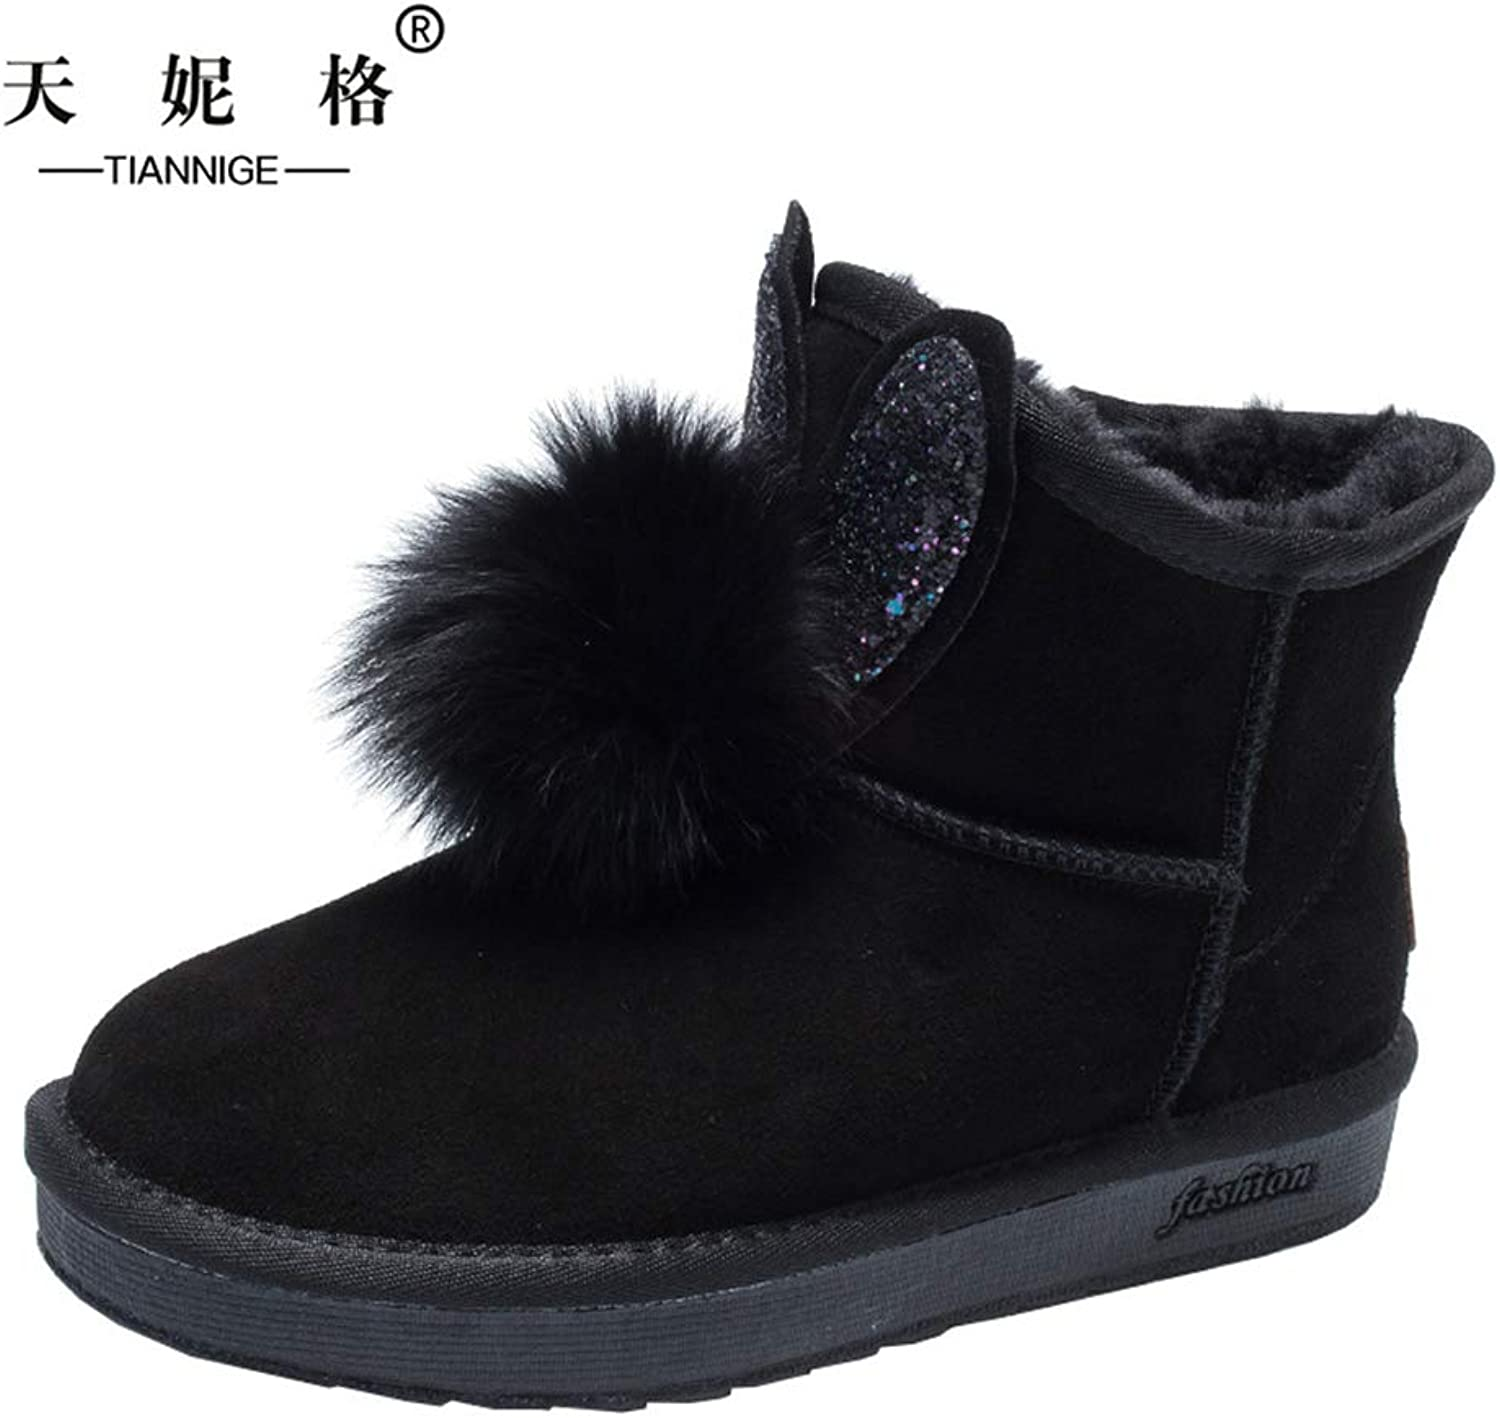 FUN.S Baby's Girl's Toddler Fashion Cute Fur Lining Princess Warm Snow Boots